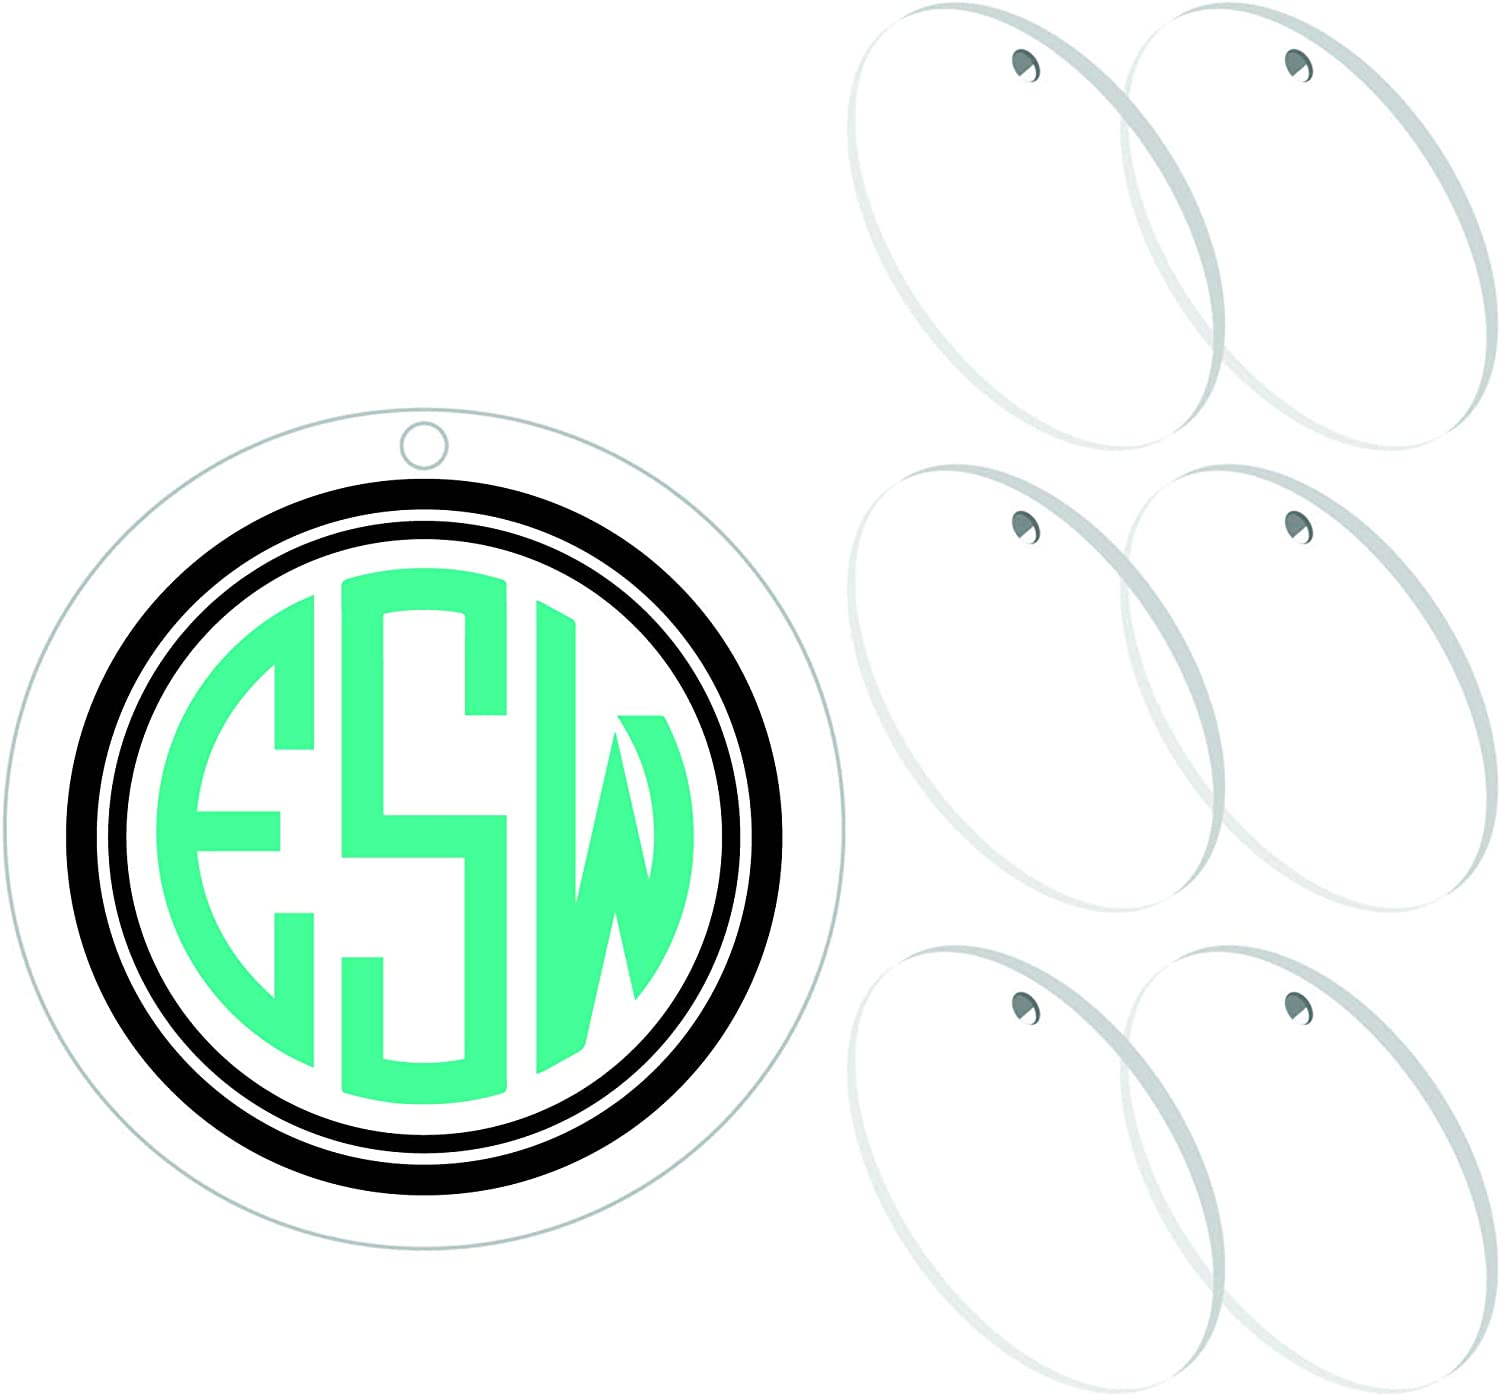 !RAKRISA 25 Pcs 2 Inch Diameter Round Acrylic Clear Keychain Blanks   1/8 Inch Thick (3mm) Durable, Water Resistant and Smooth Edges   Perfect for DIY Projects and Crafts (25, 2 Inch) 71JhCYmLgKL